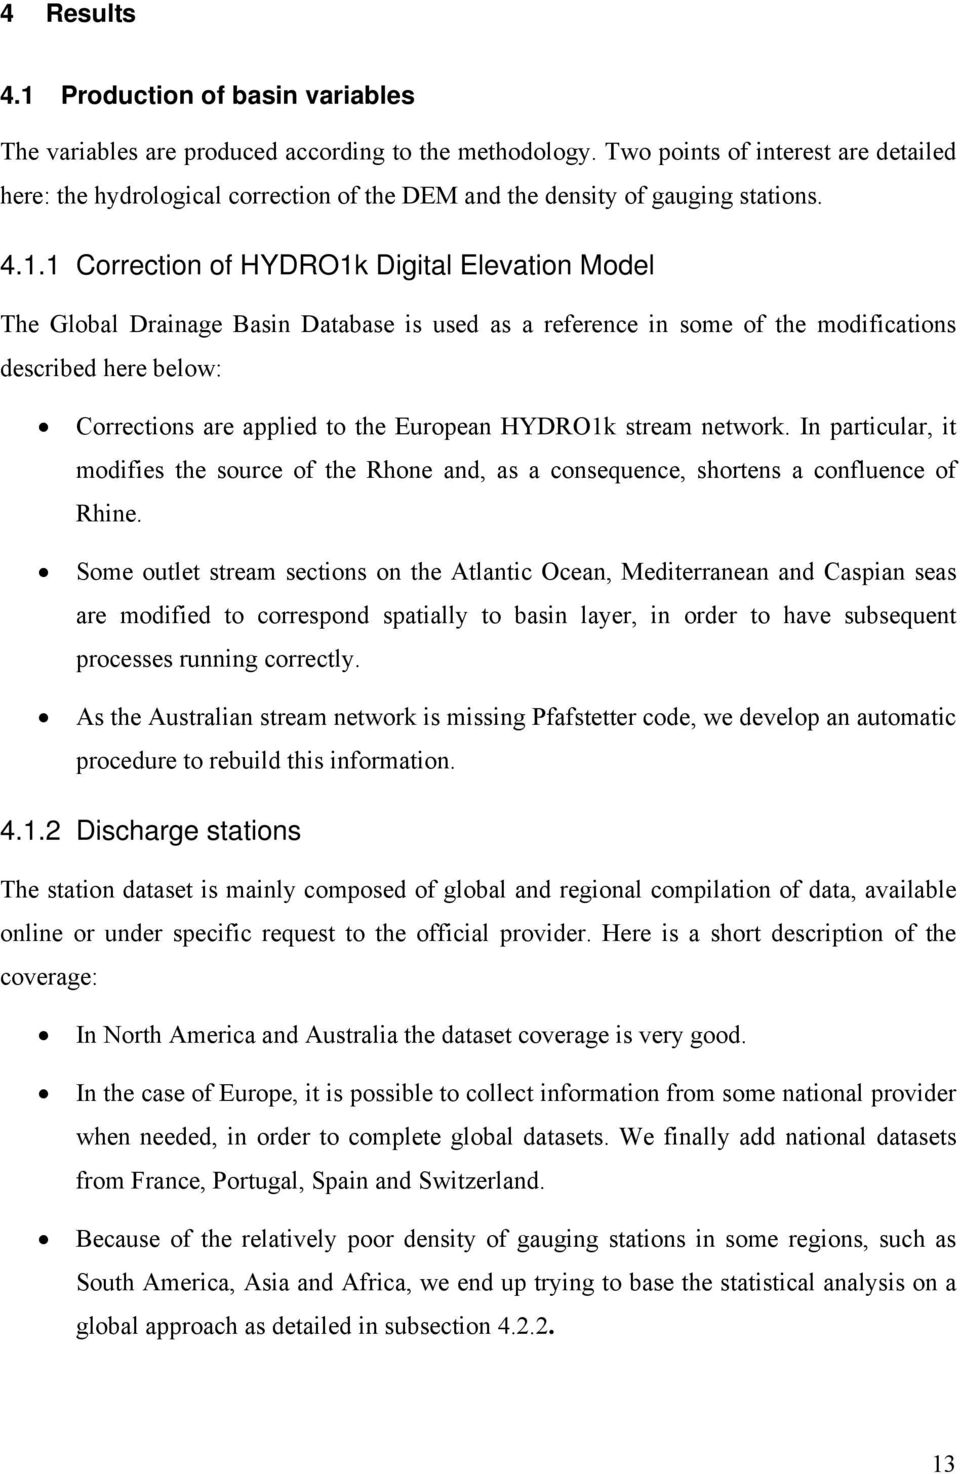 1 Correction of HYDRO1k Digital Elevation Model The Global Drainage Basin Database is used as a reference in some of the modifications described here below: Corrections are applied to the European